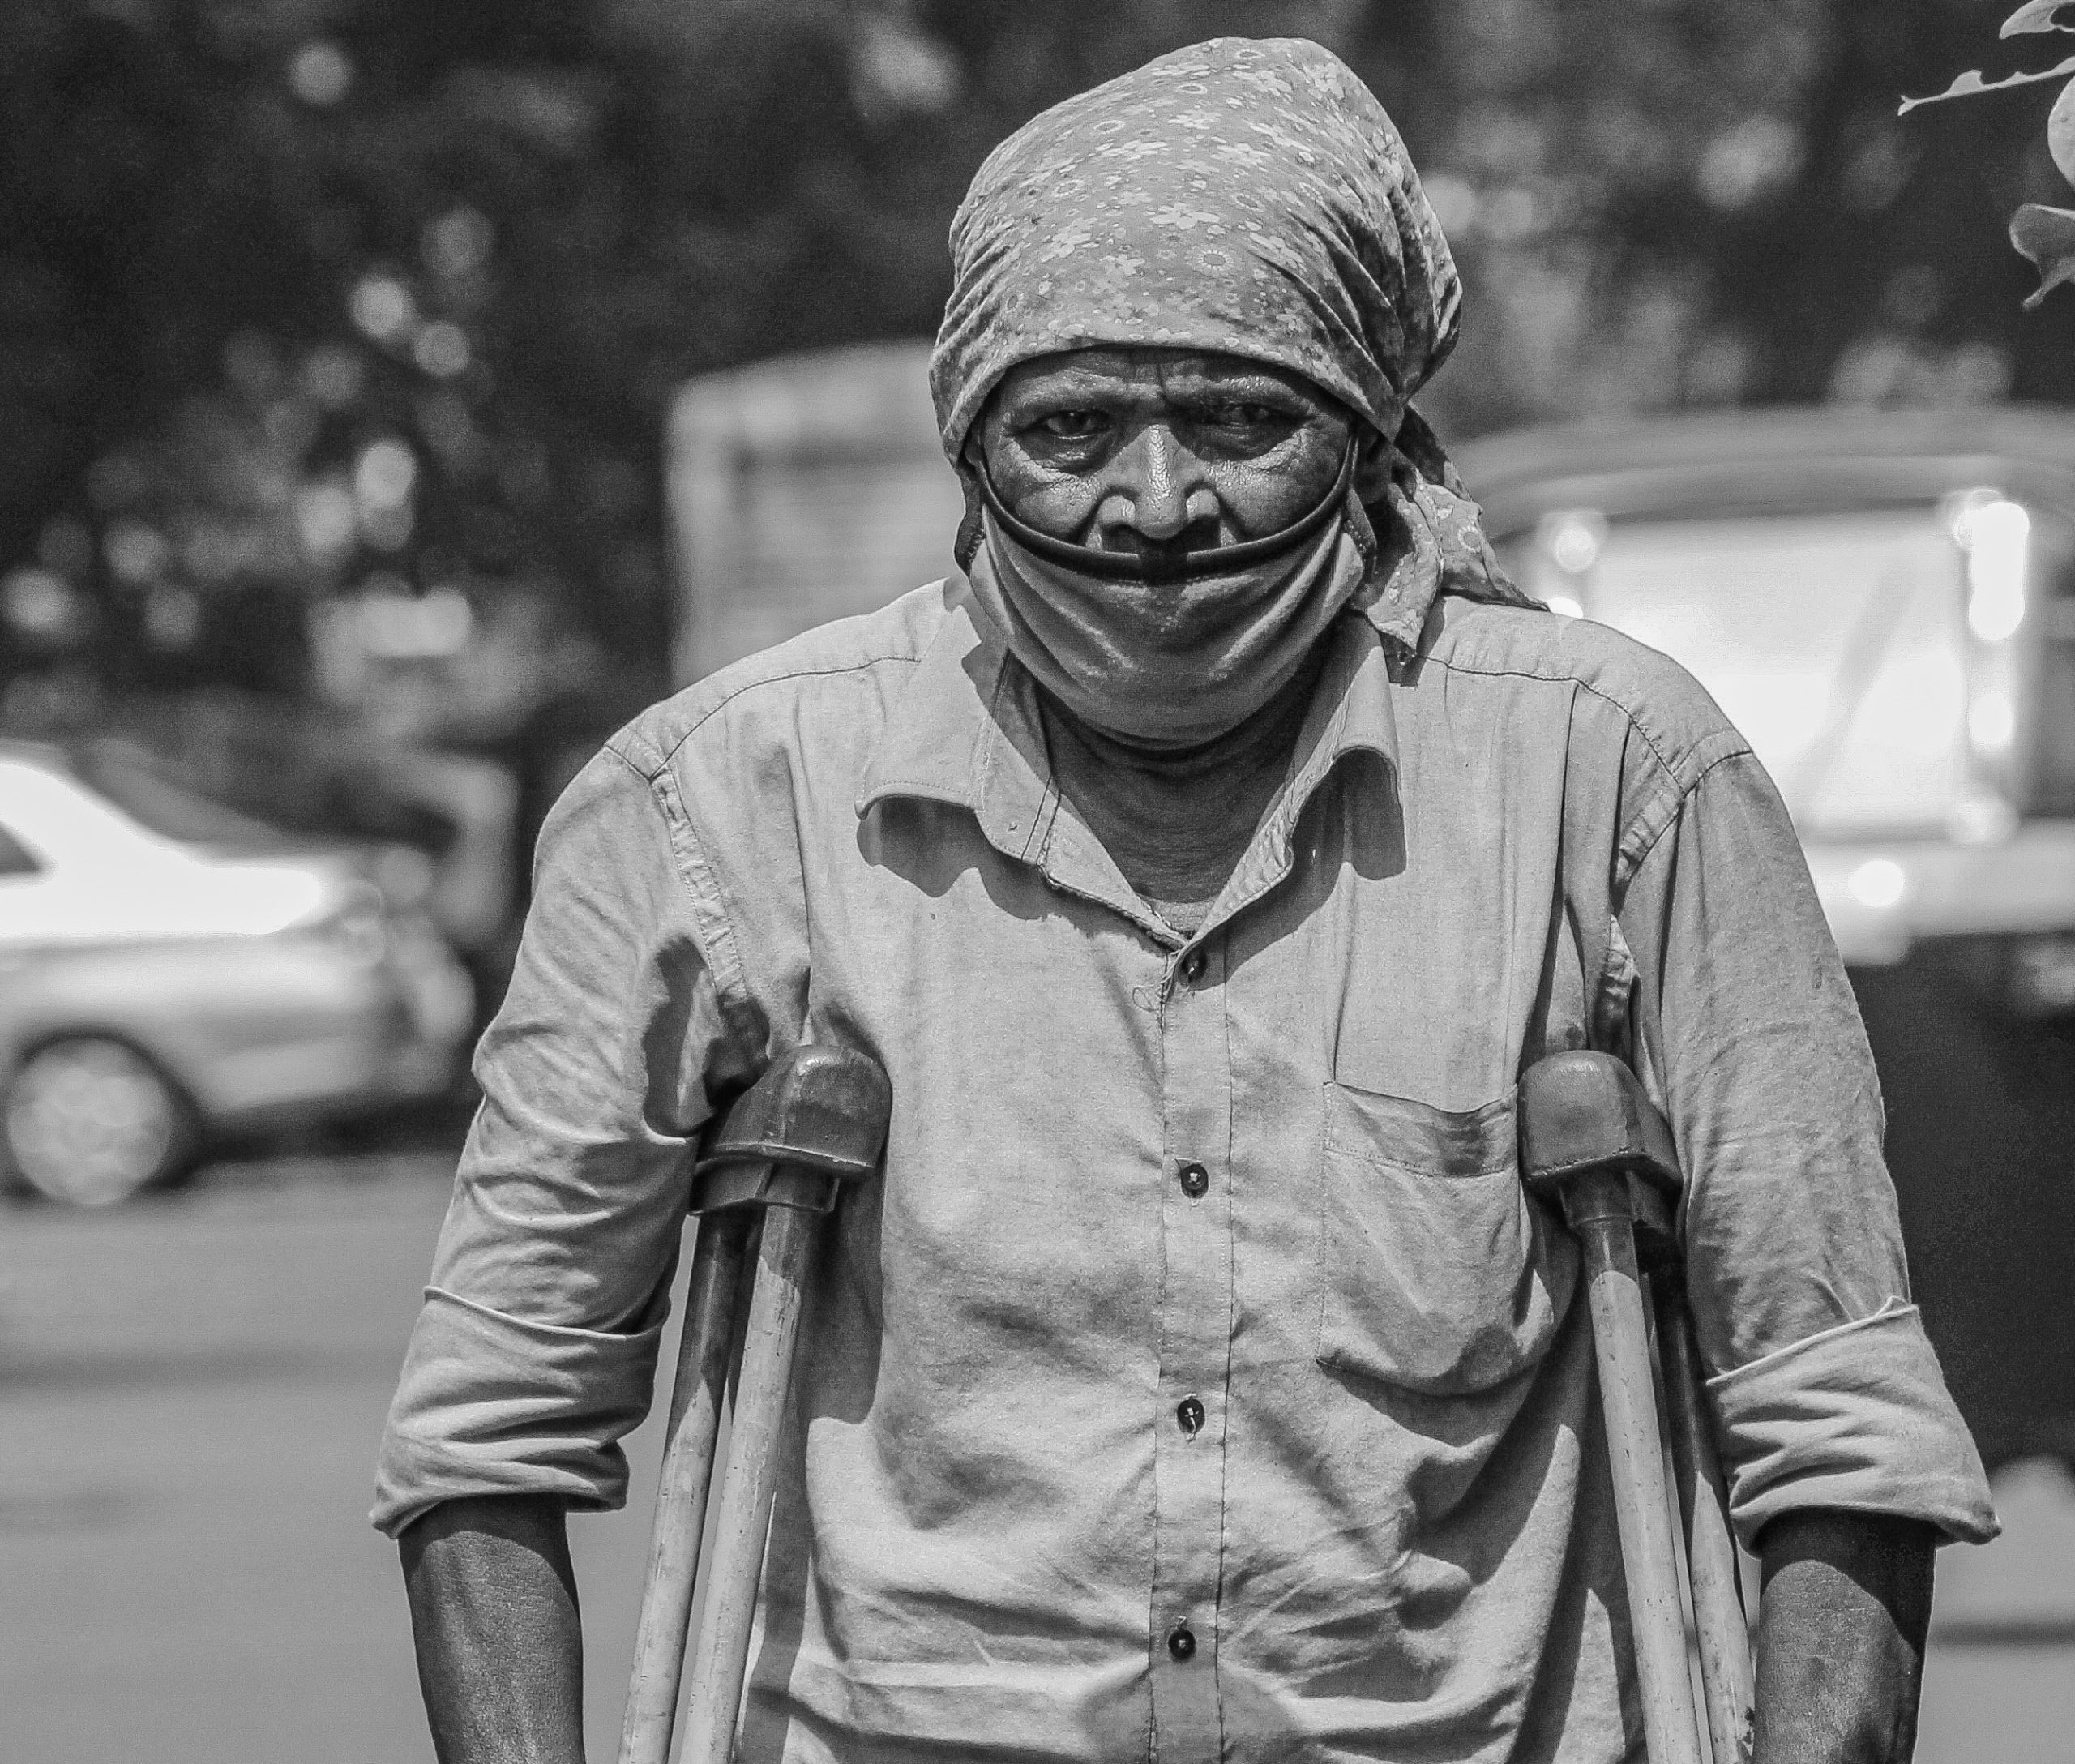 handicapped man on the street